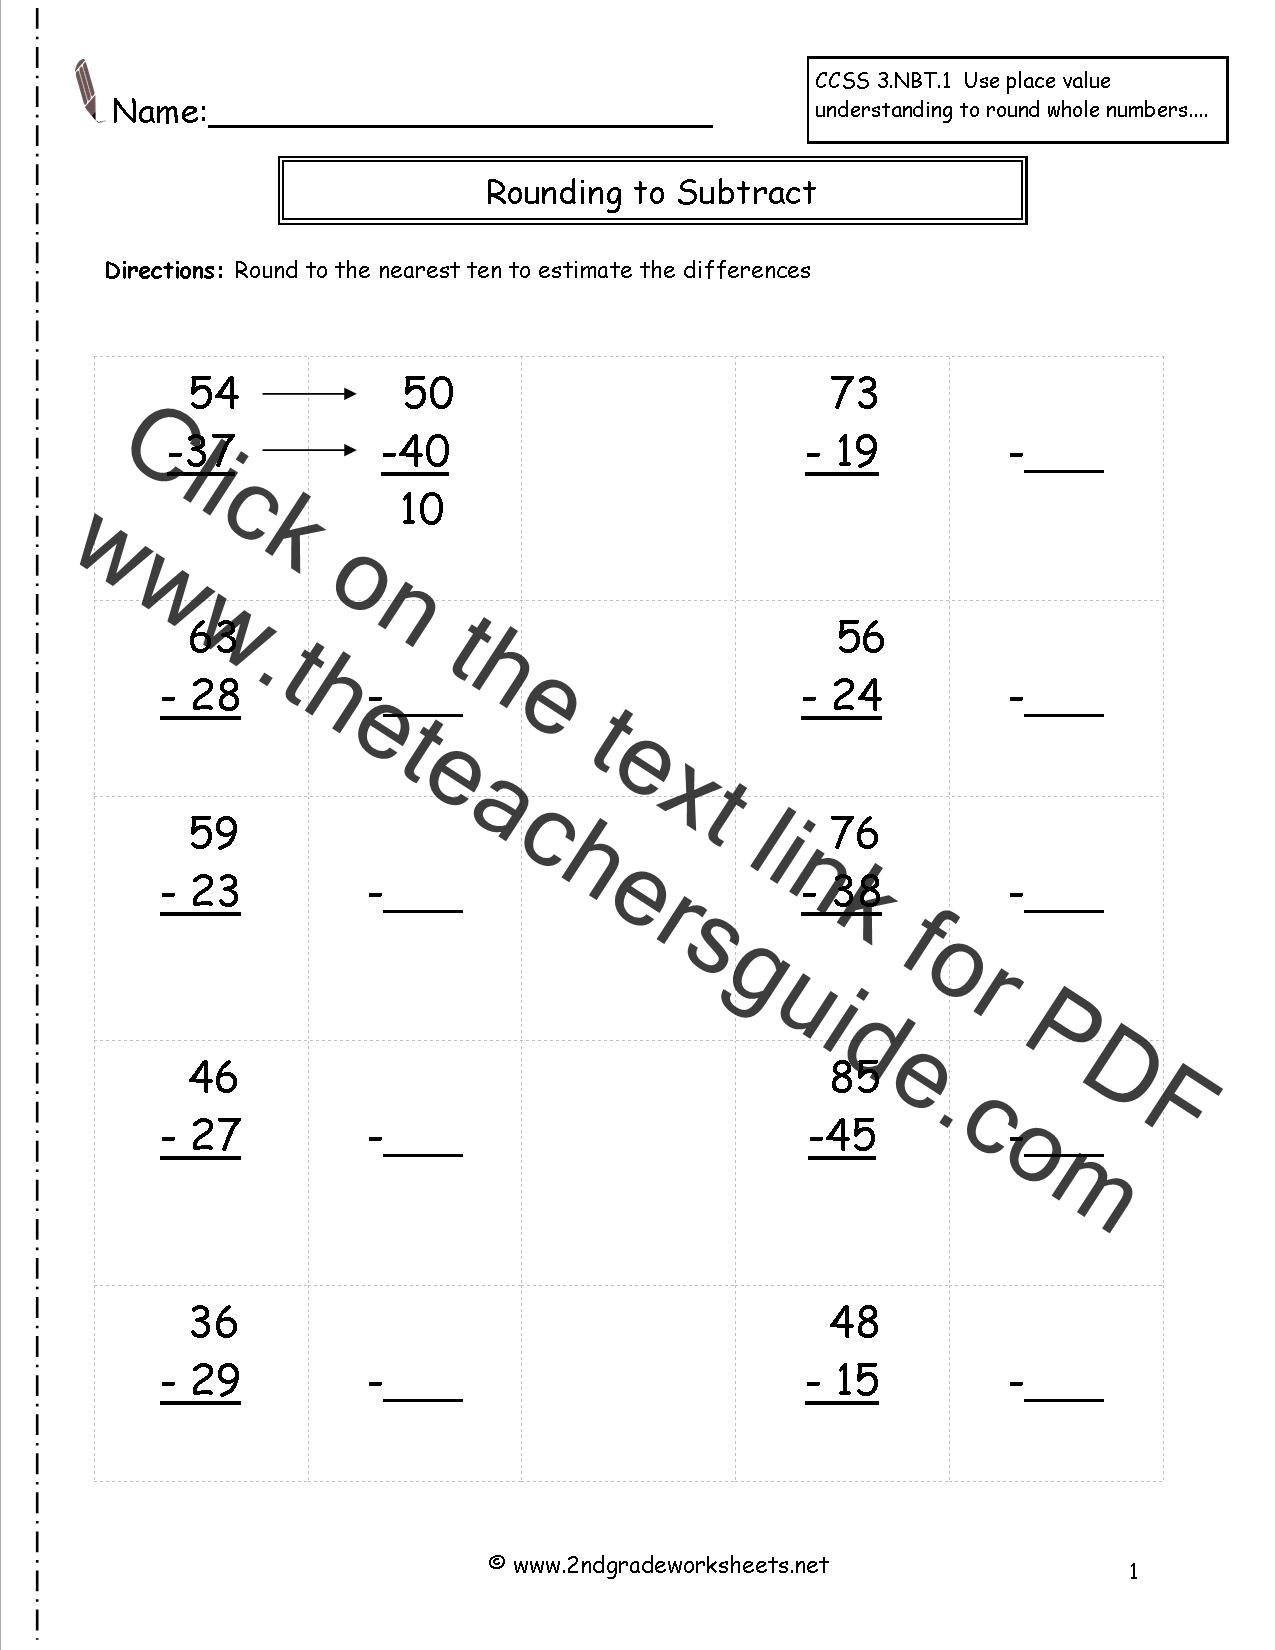 Rounding Whole Numbers Worksheets – Ballpark Estimate Worksheets